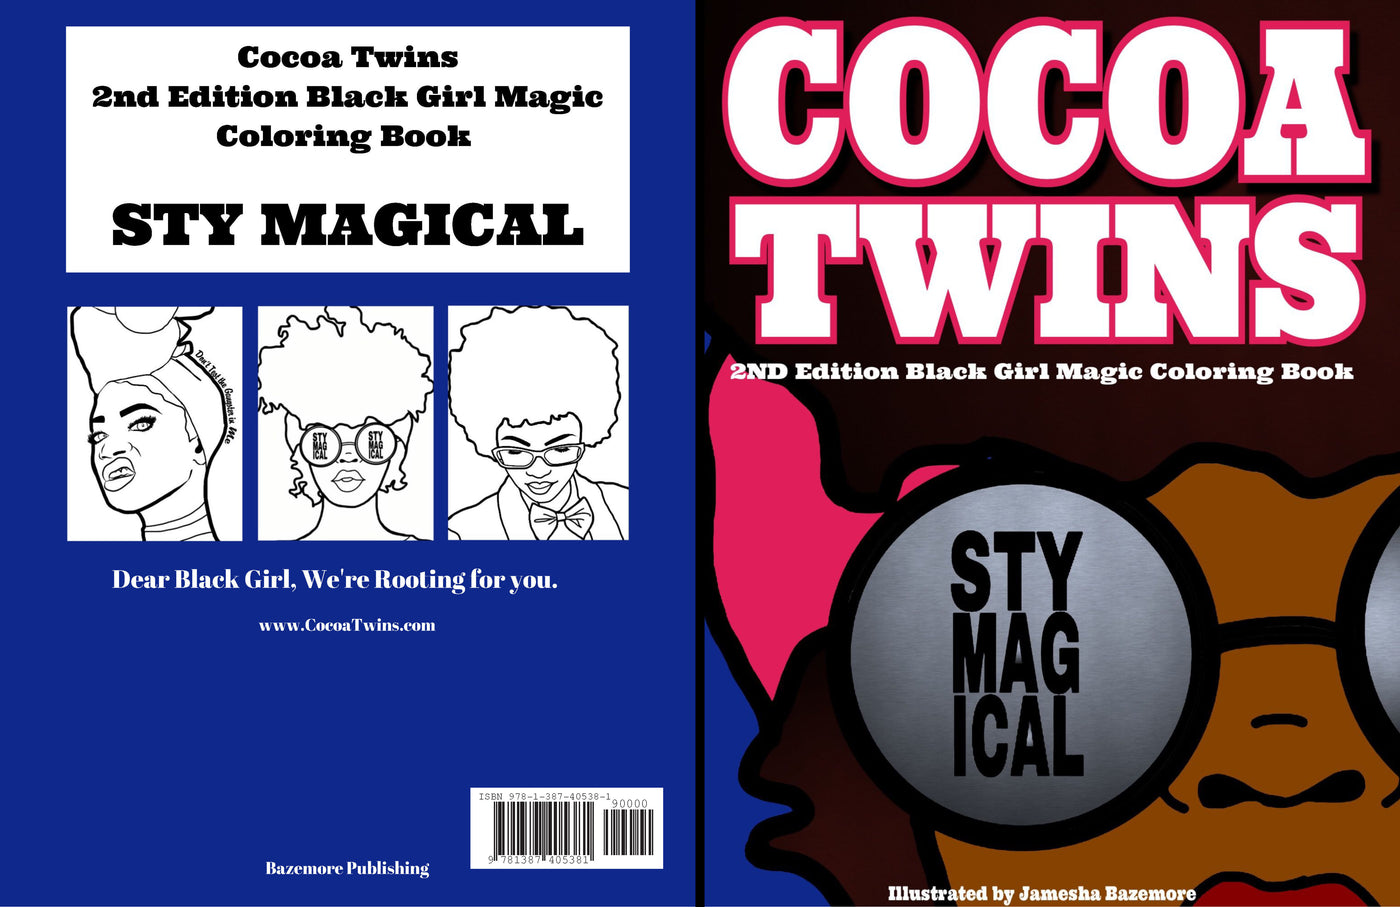 Cocoa Twins - 2nd Edition Coloring Book - Stay Magical